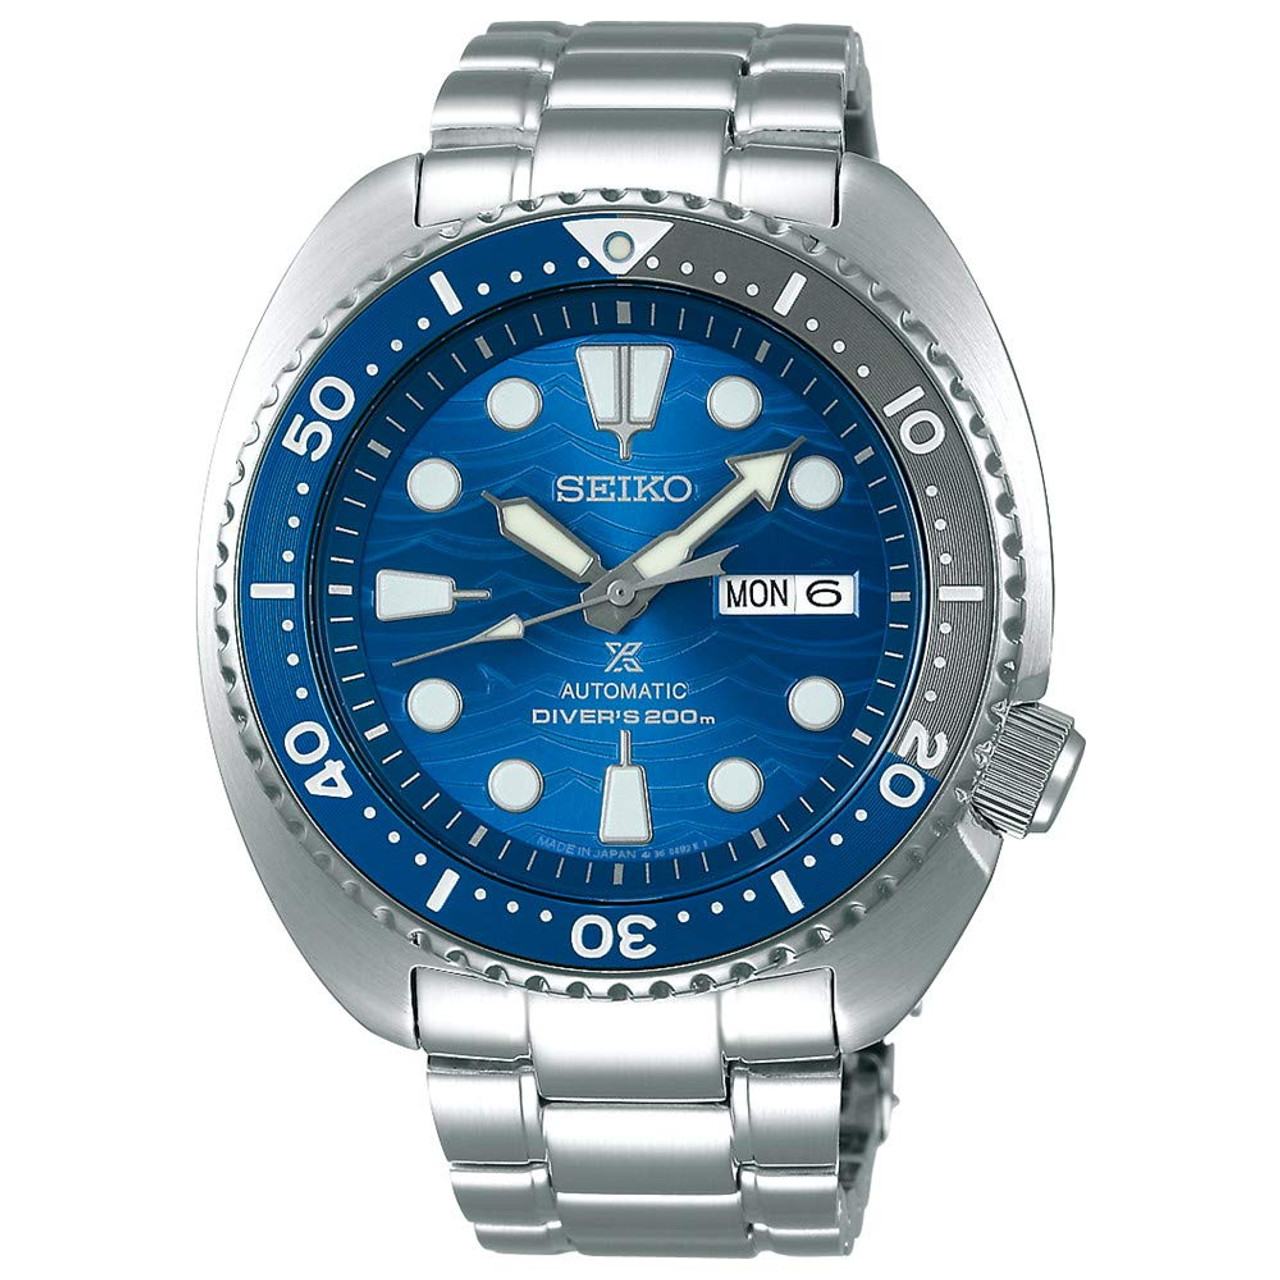 Seiko Turtle Great White Shark SRPD21K1 / SBDY031